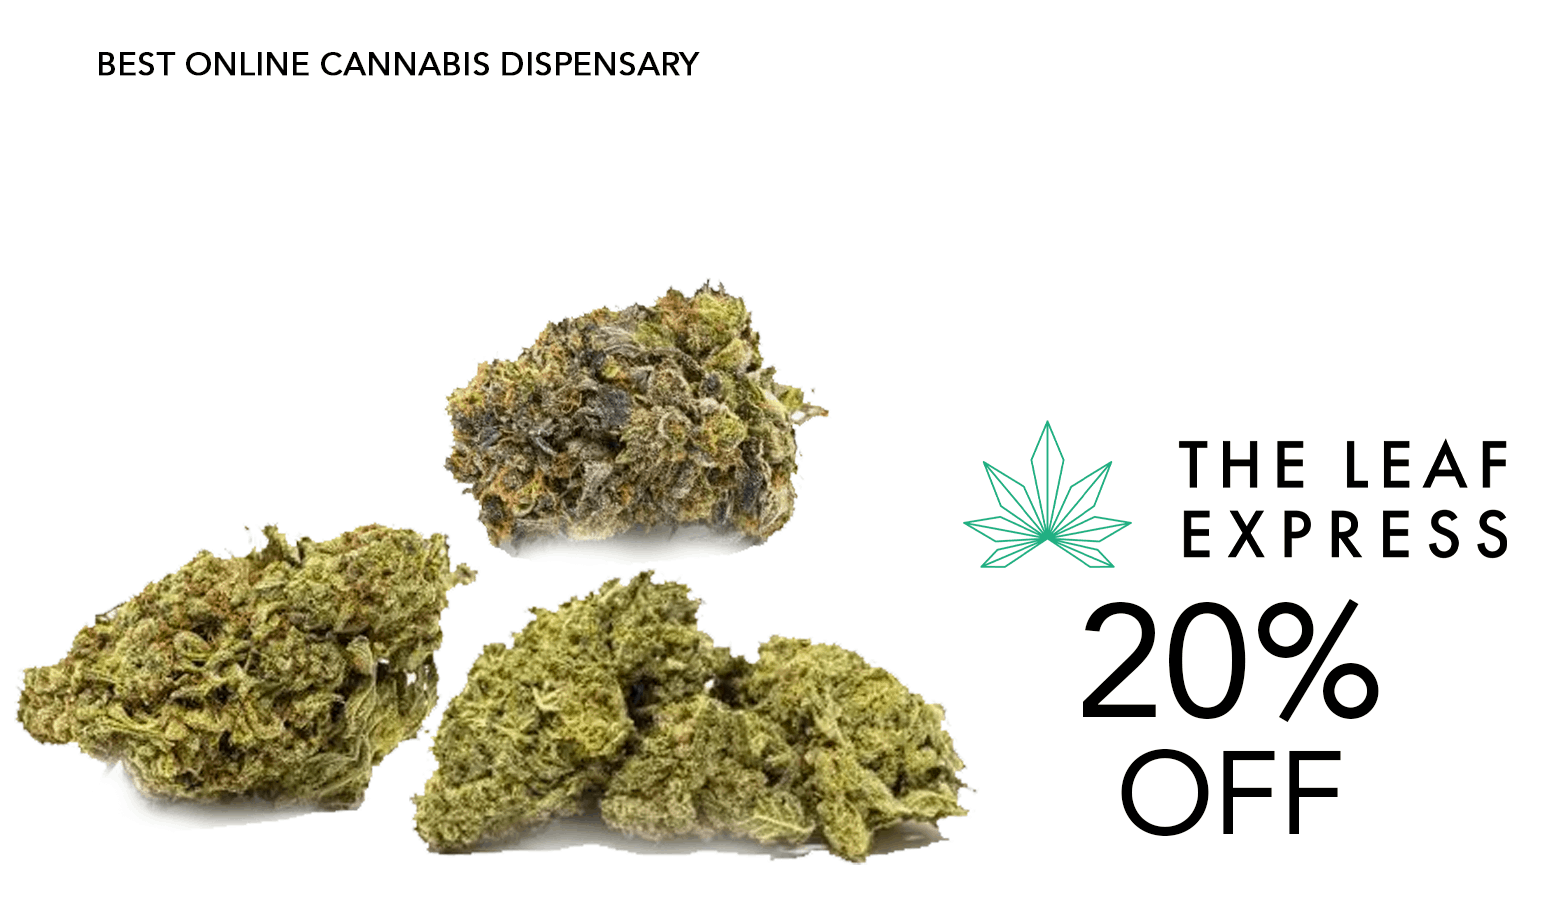 The Leaf Express THC Coupon Code Offer Website